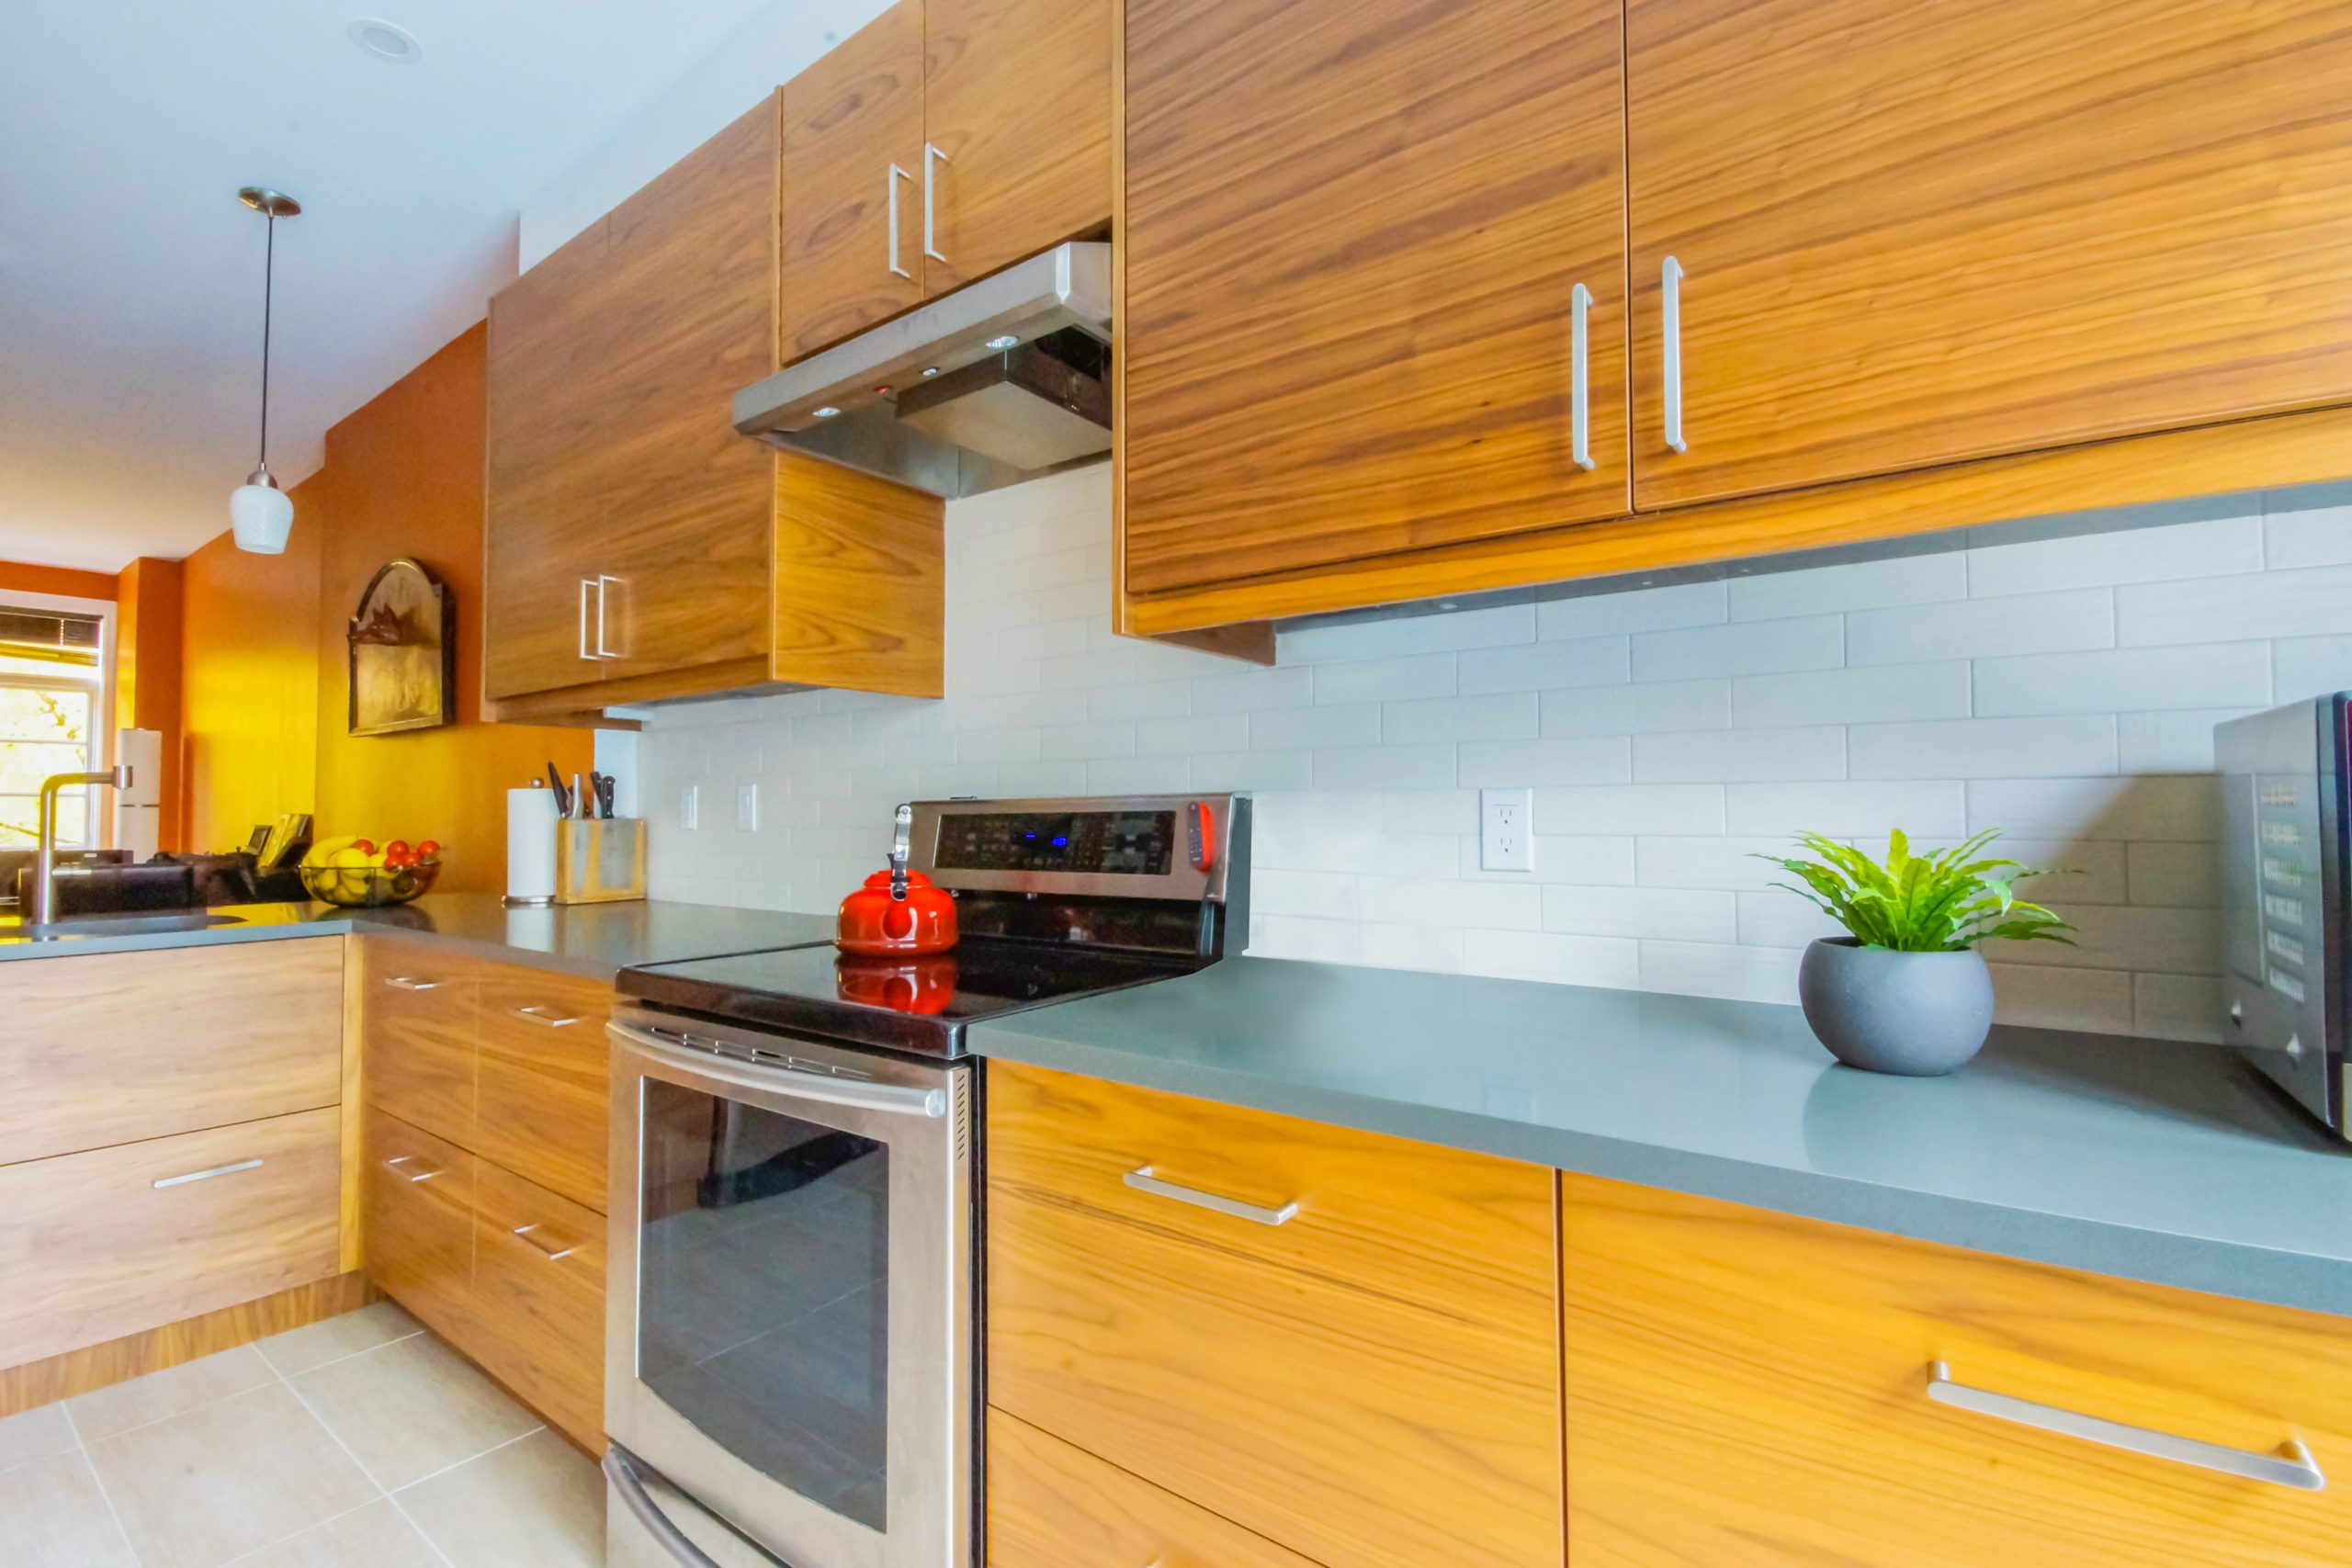 East York Ave. – Toronto Ikea Retrofit Kitchen Renovation - Featured Image